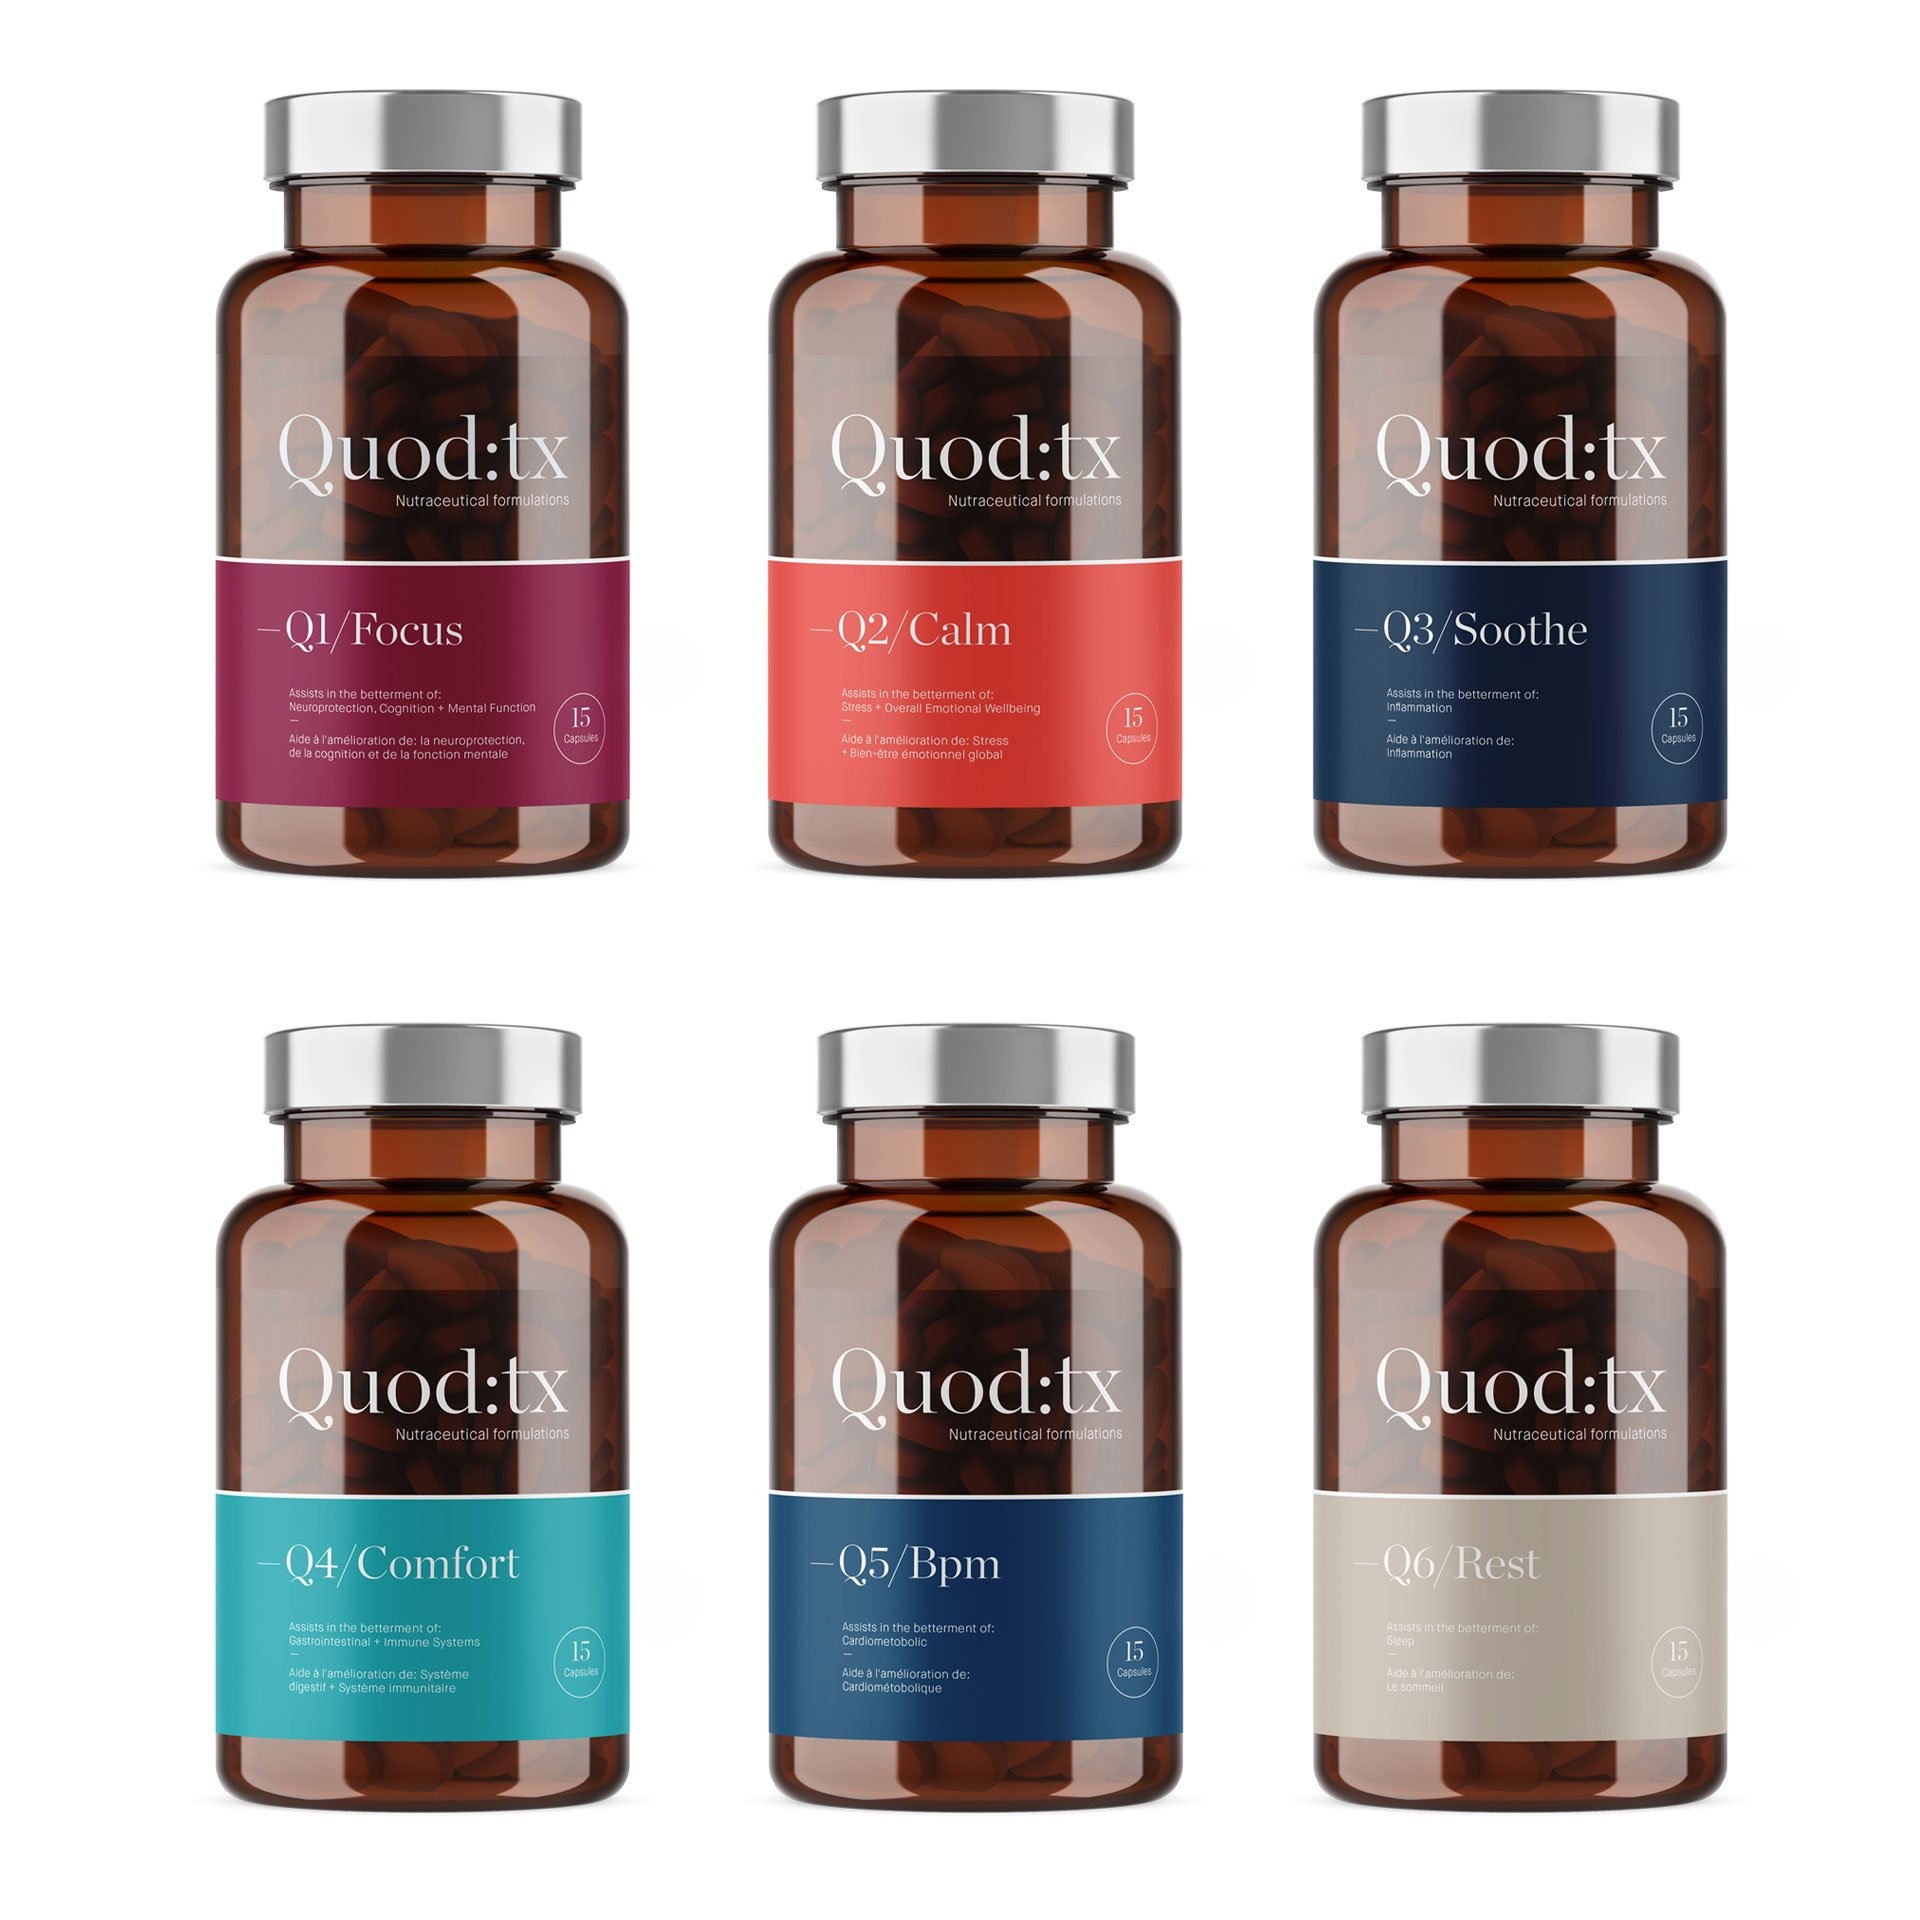 Quod:TX nutraceutical packaging